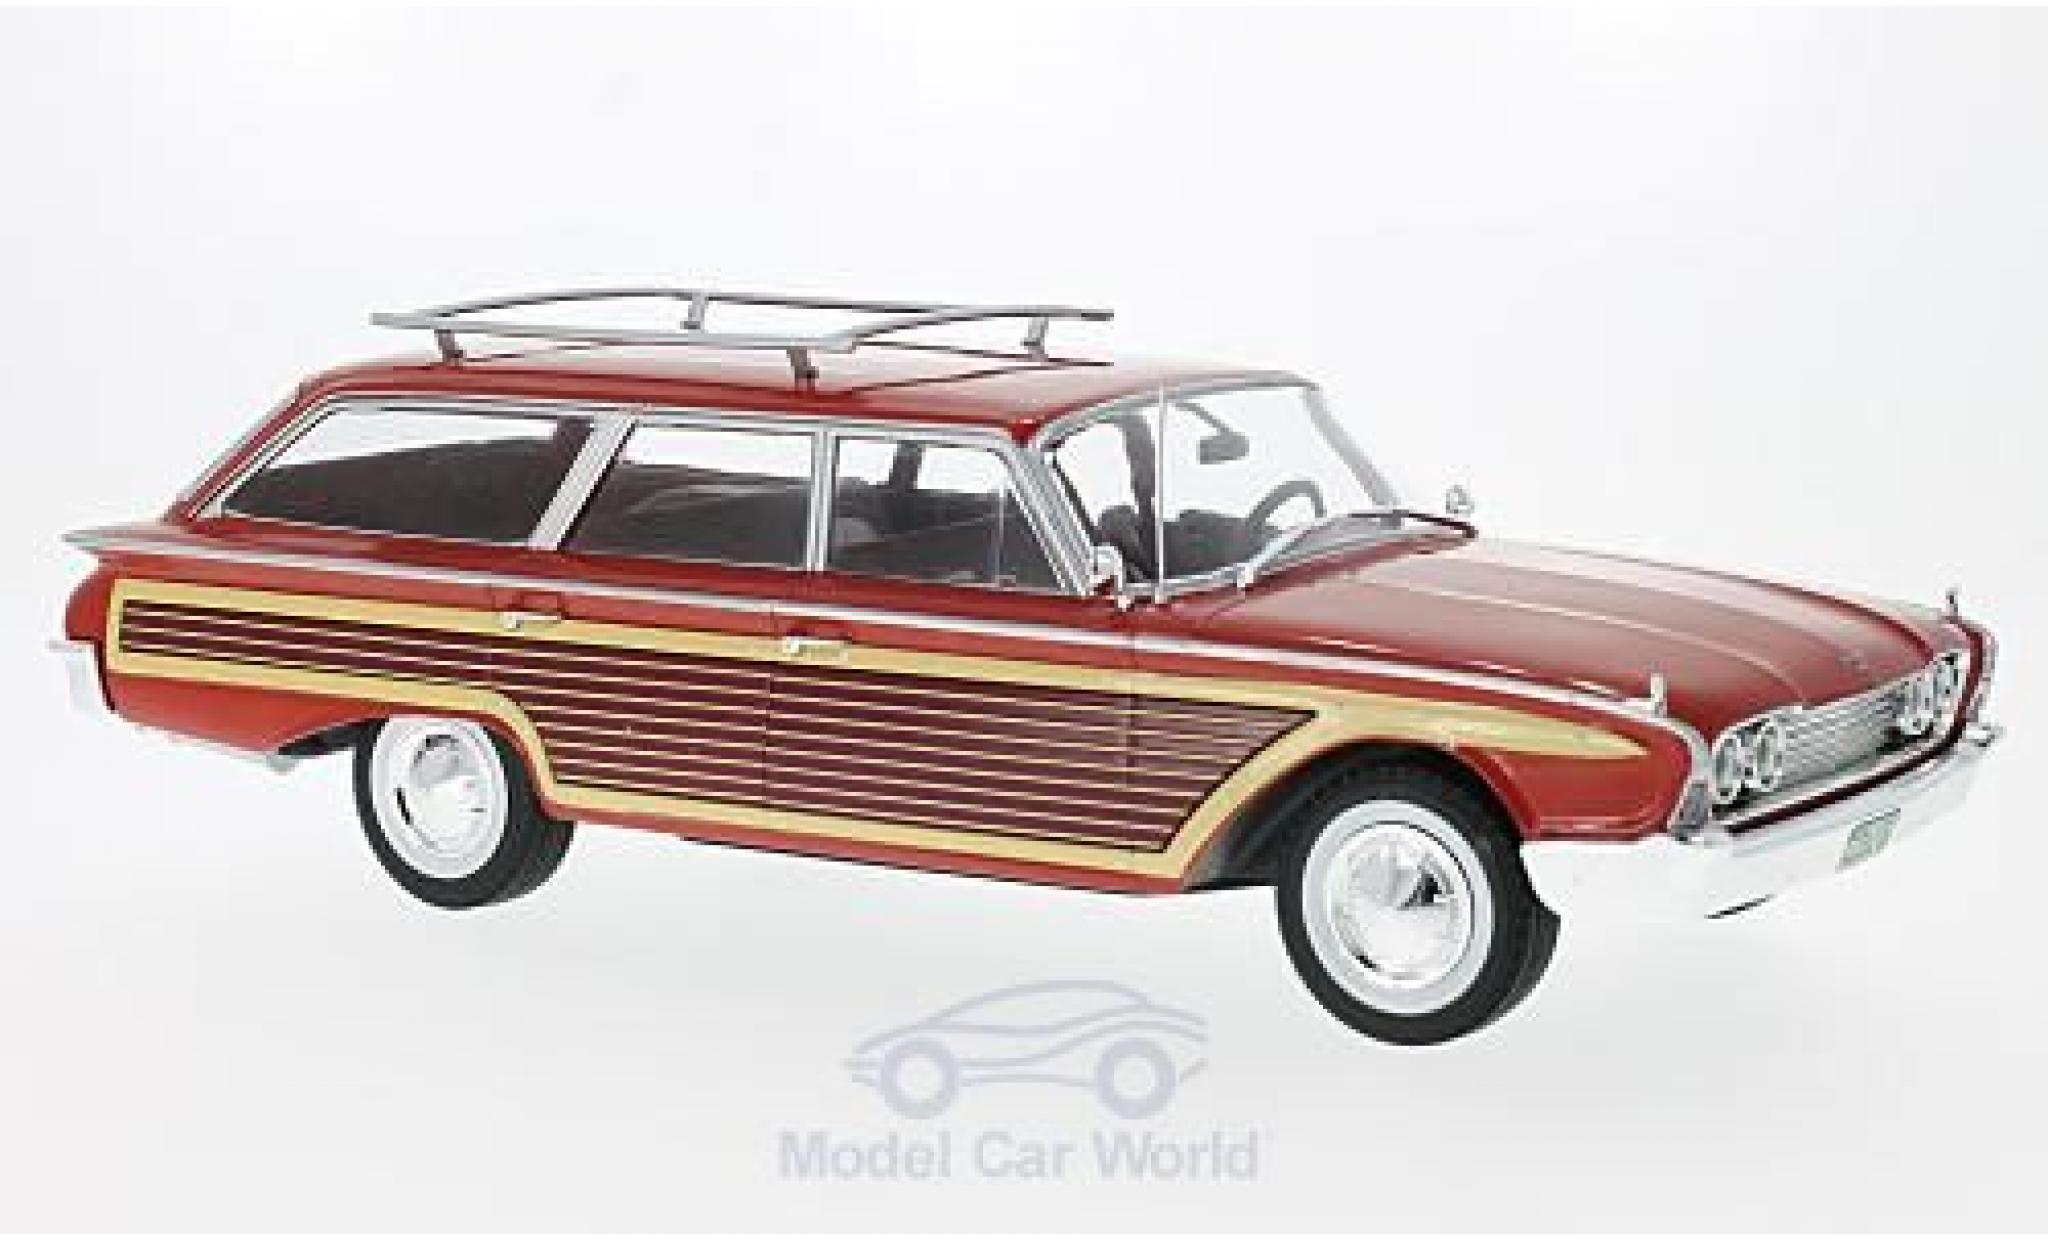 Ford Country Squire 1/18 MCG rouge/Holzoptik 1960 mit Dachreling